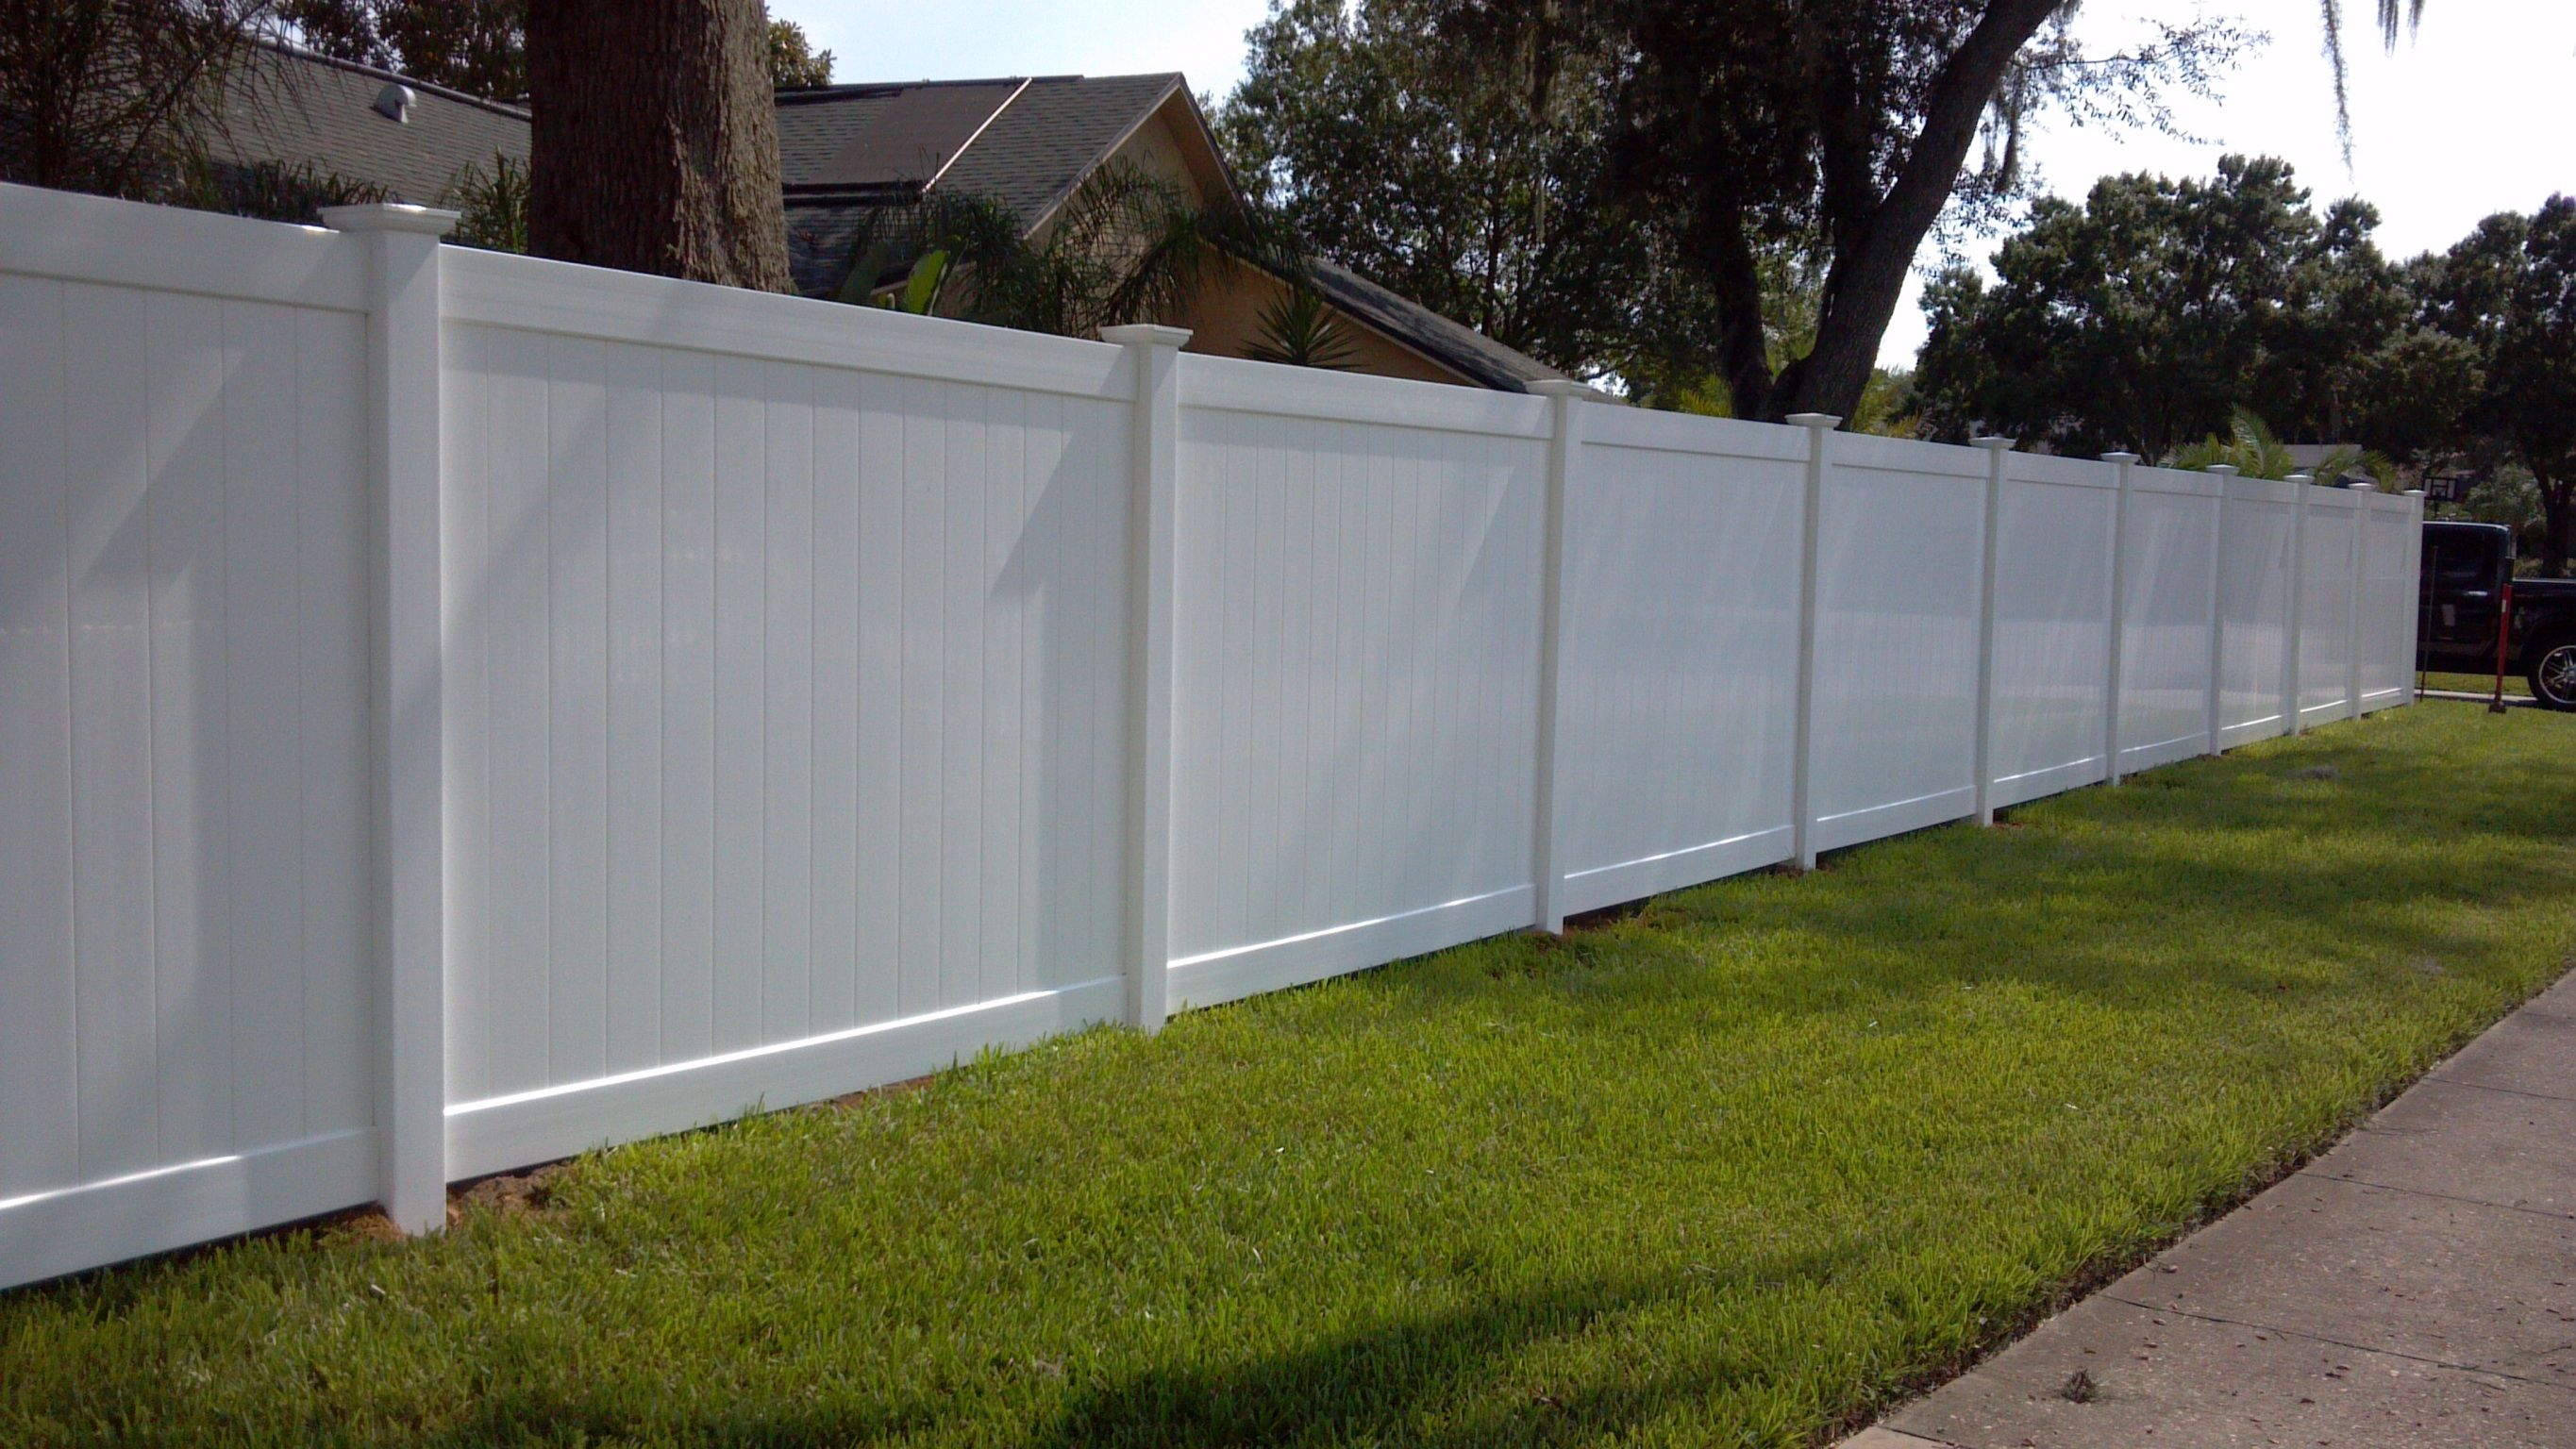 Plastic Fences Driven Into Ground With Attached Posts Pvc Security Fence Egypt Vinyl Fence Vinyl Picket Fence Fence Lighting